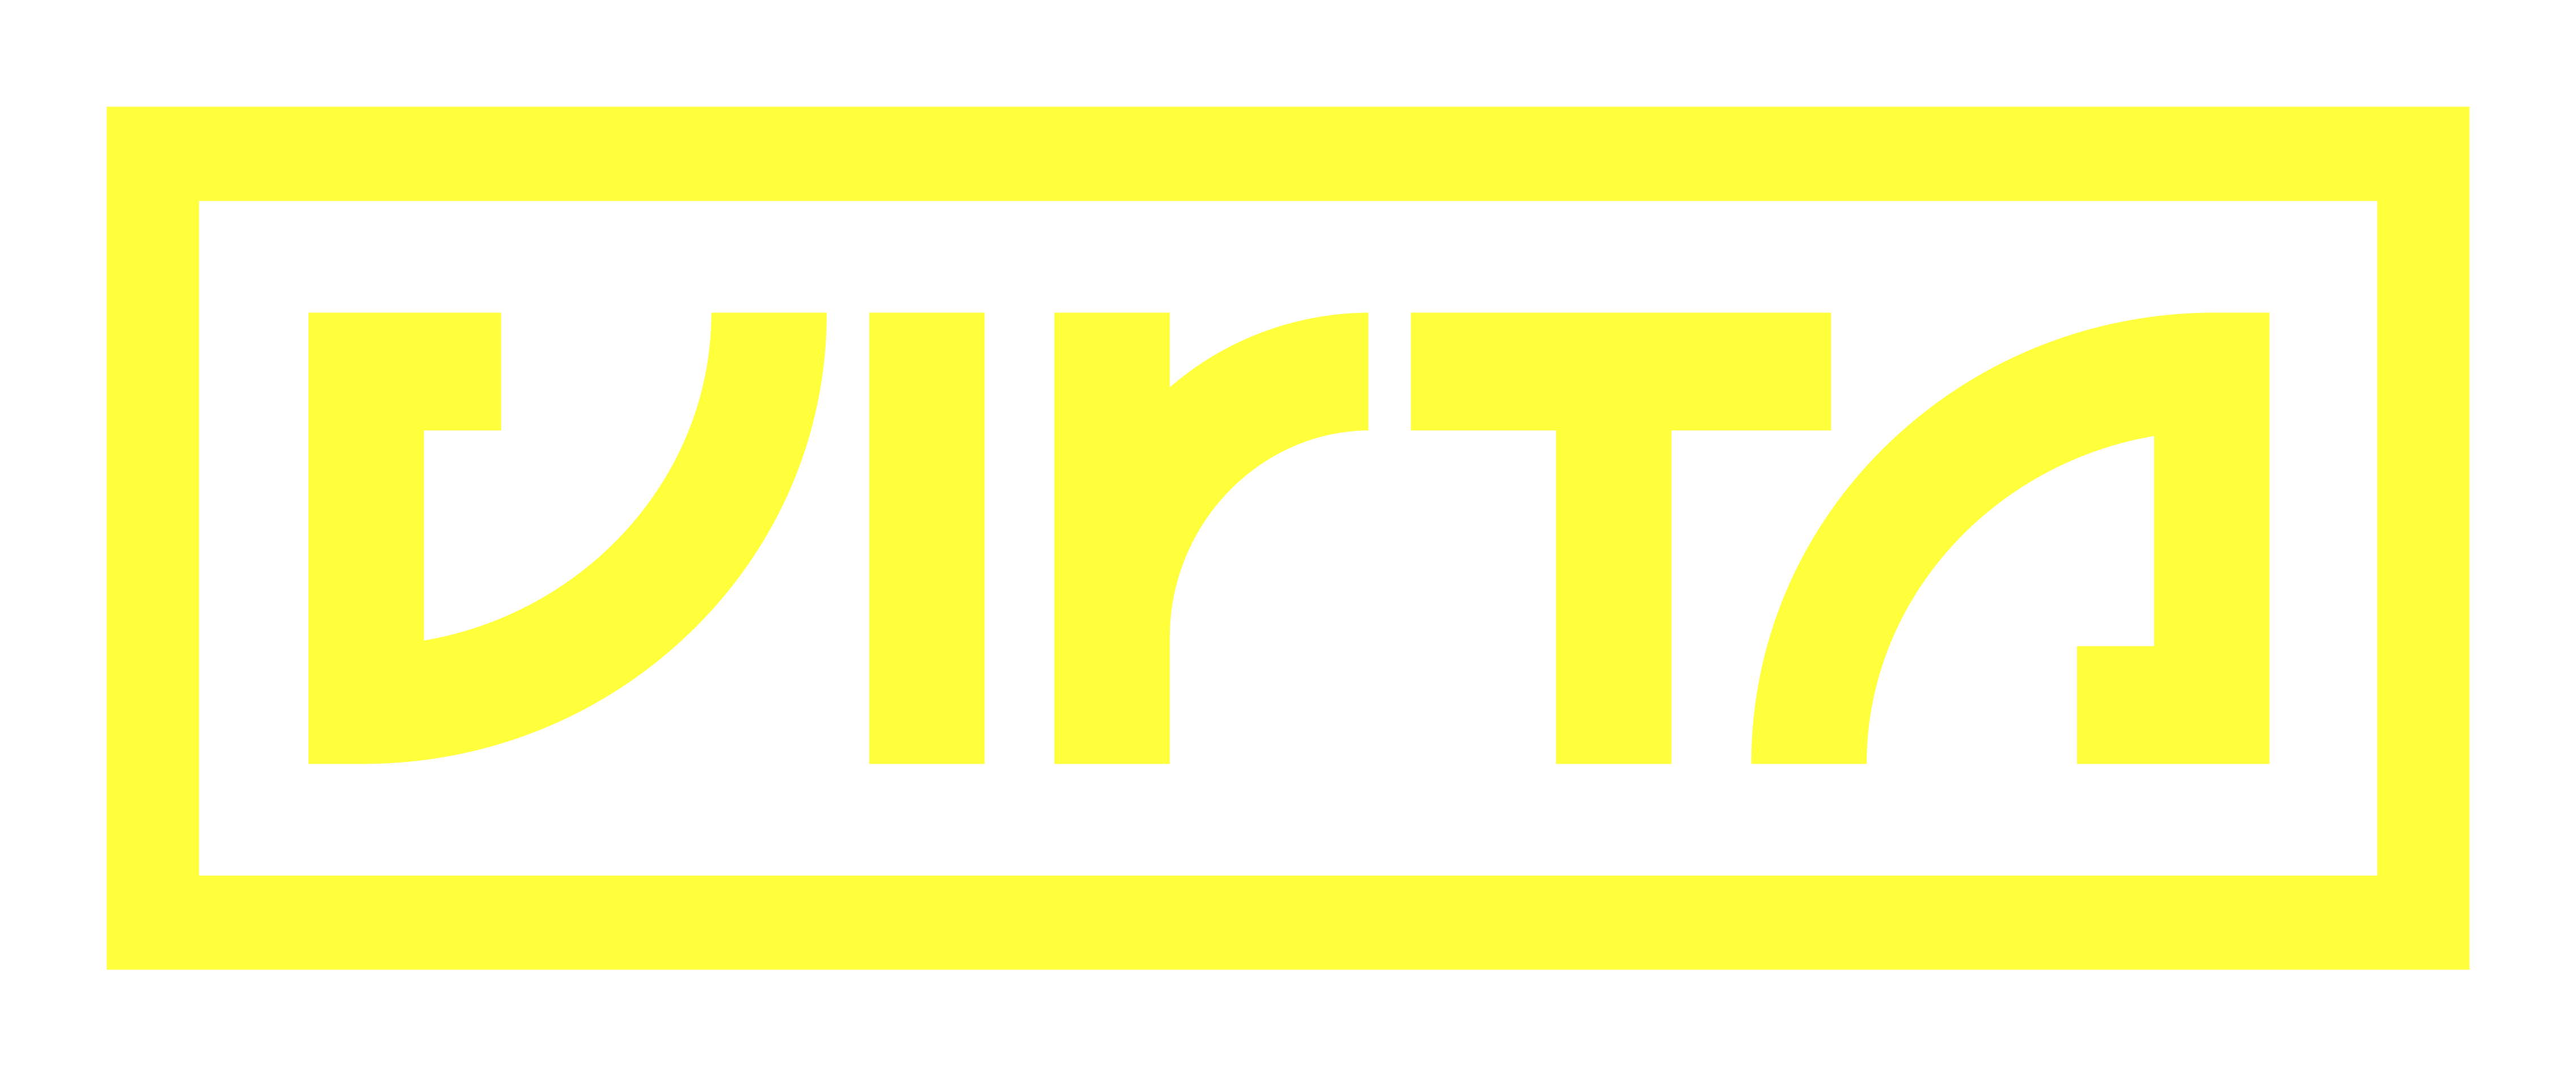 virta_logo_yellow_official.png